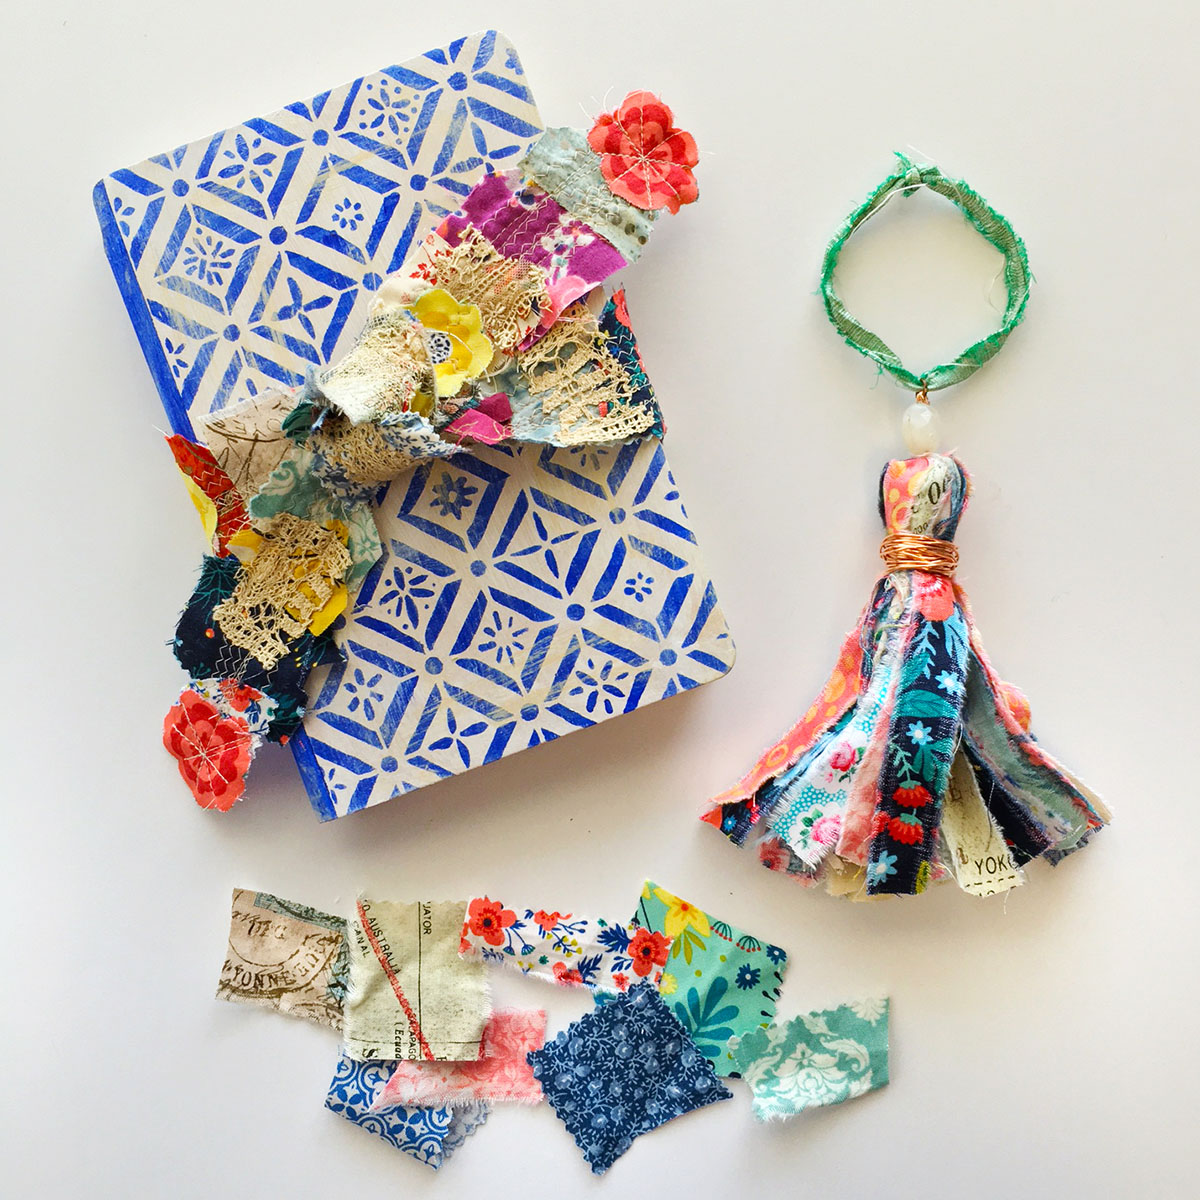 5 Fabric Scrap Projects To Shrink Your Stash Cloth Paper Scissors